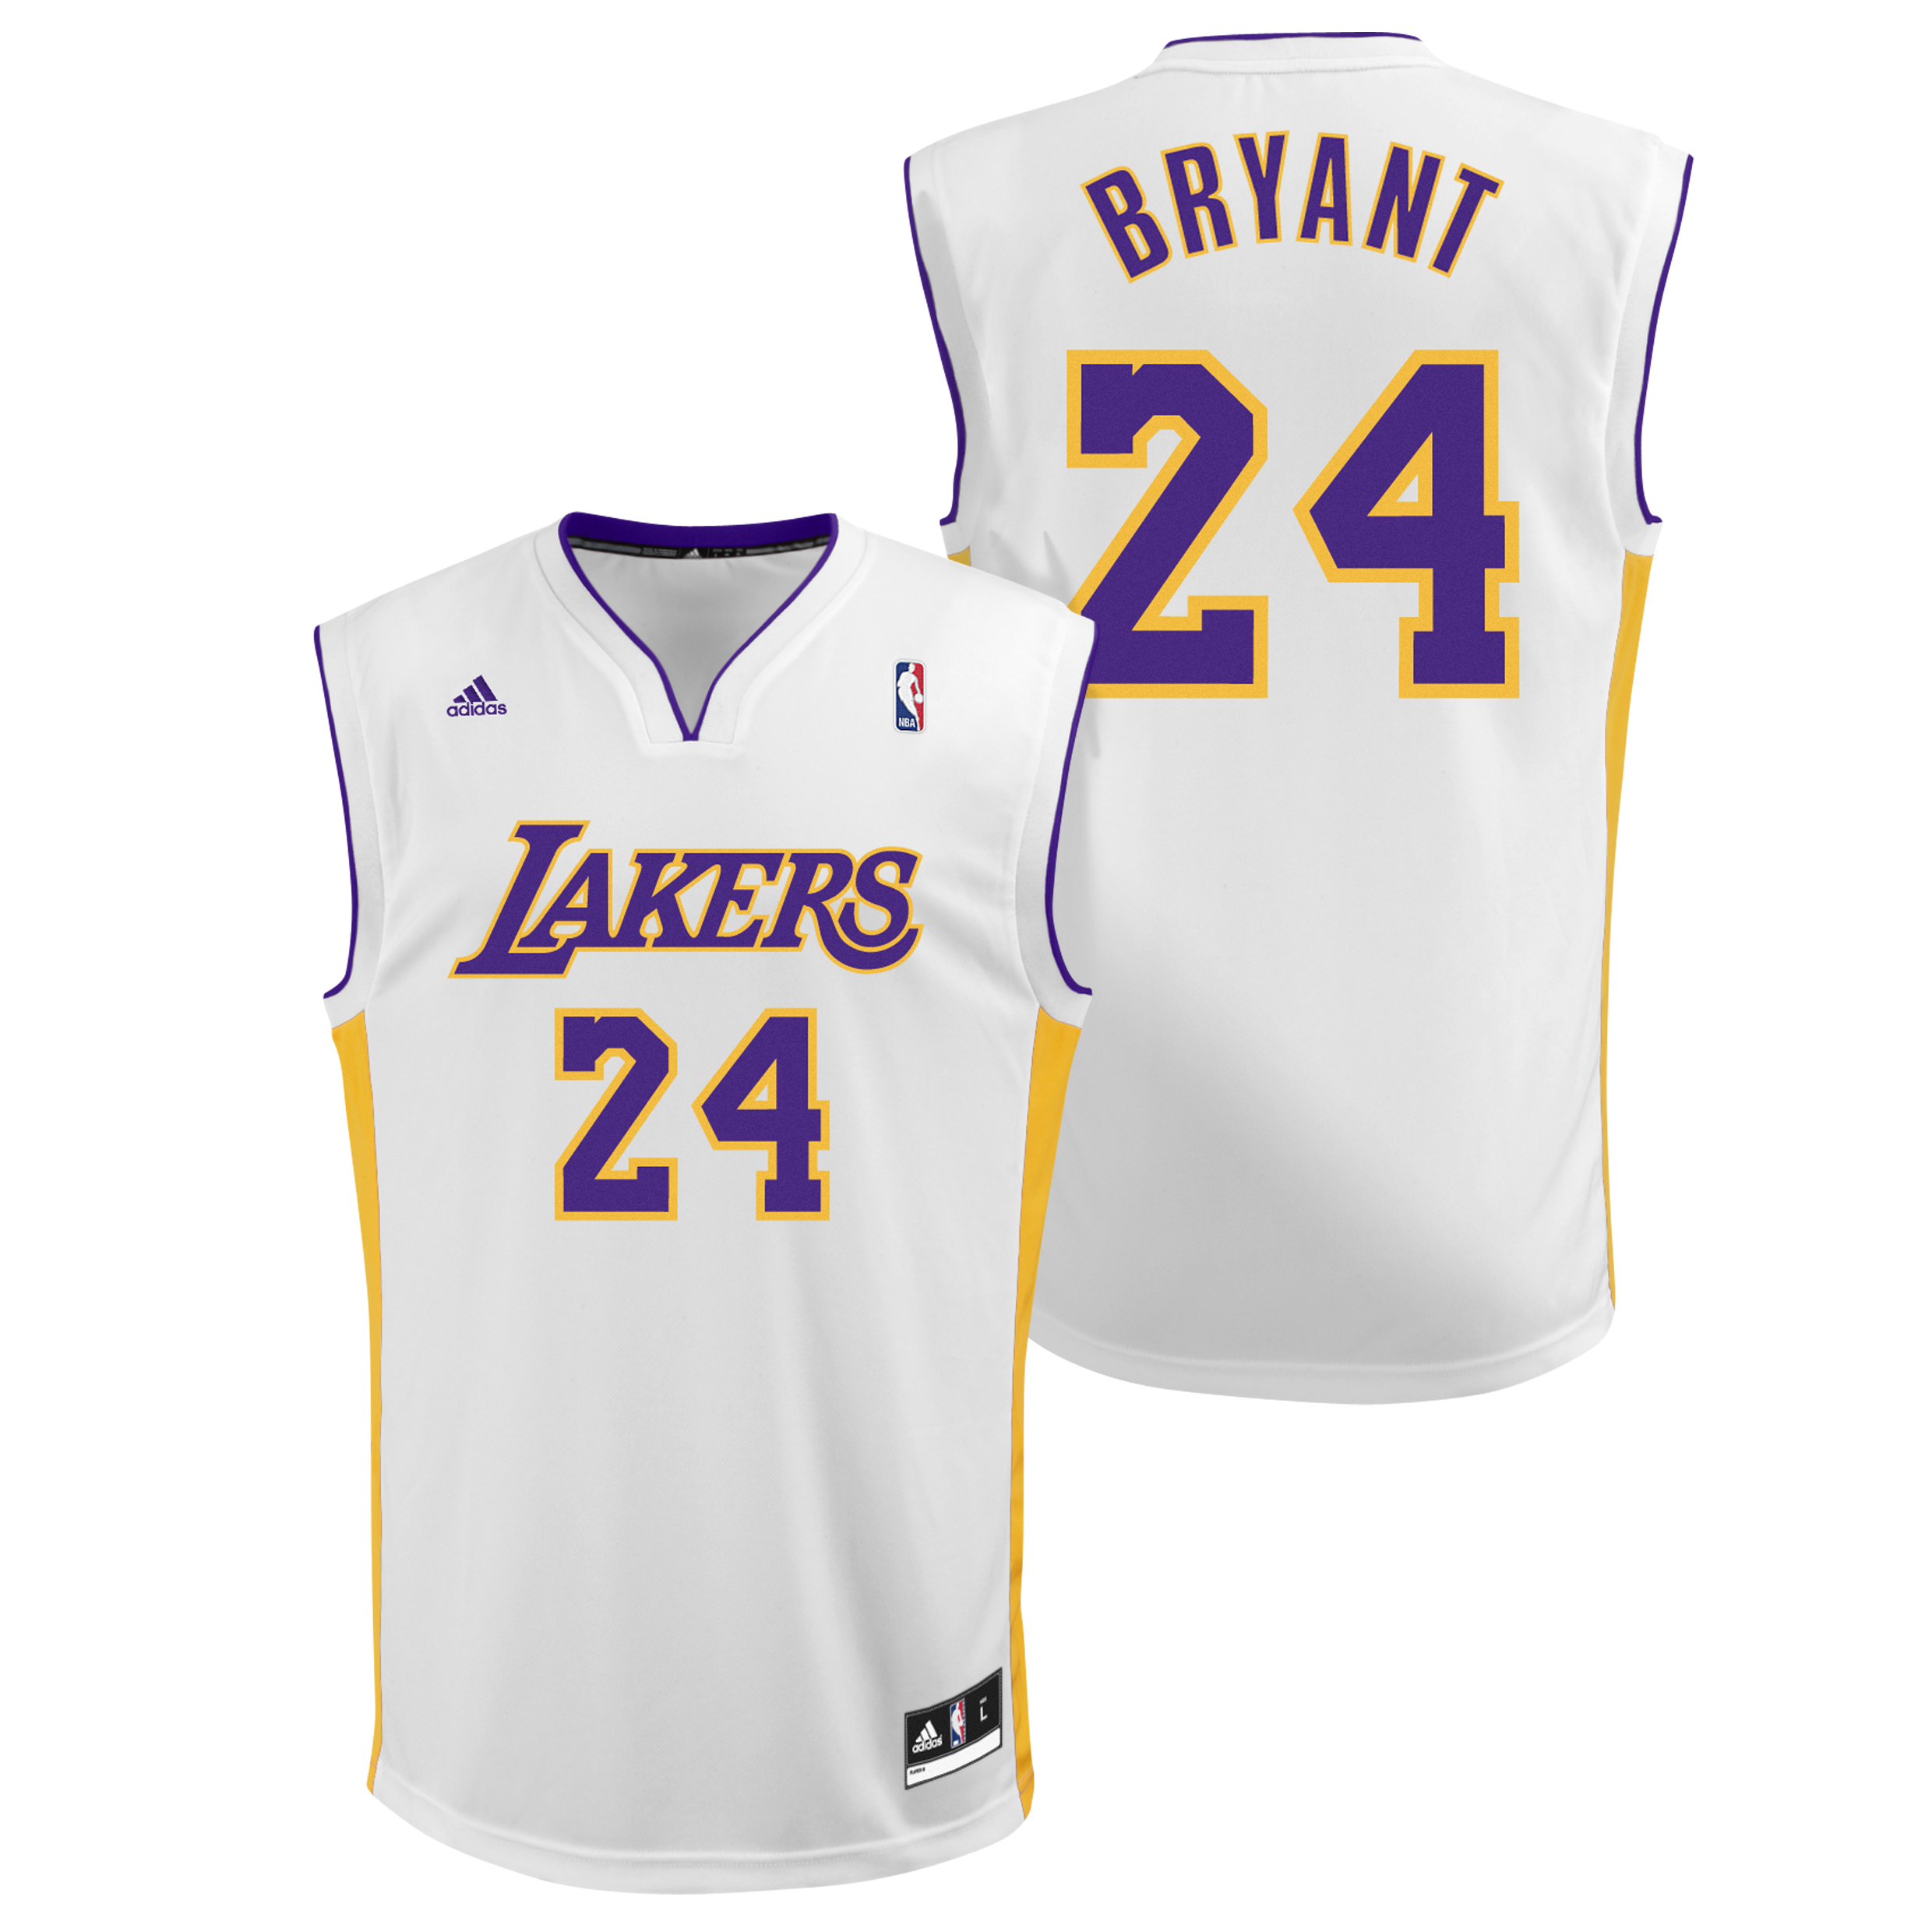 Los Angeles Lakers Alternate Road White Replica Jersey - Kobe Bryant - Mens